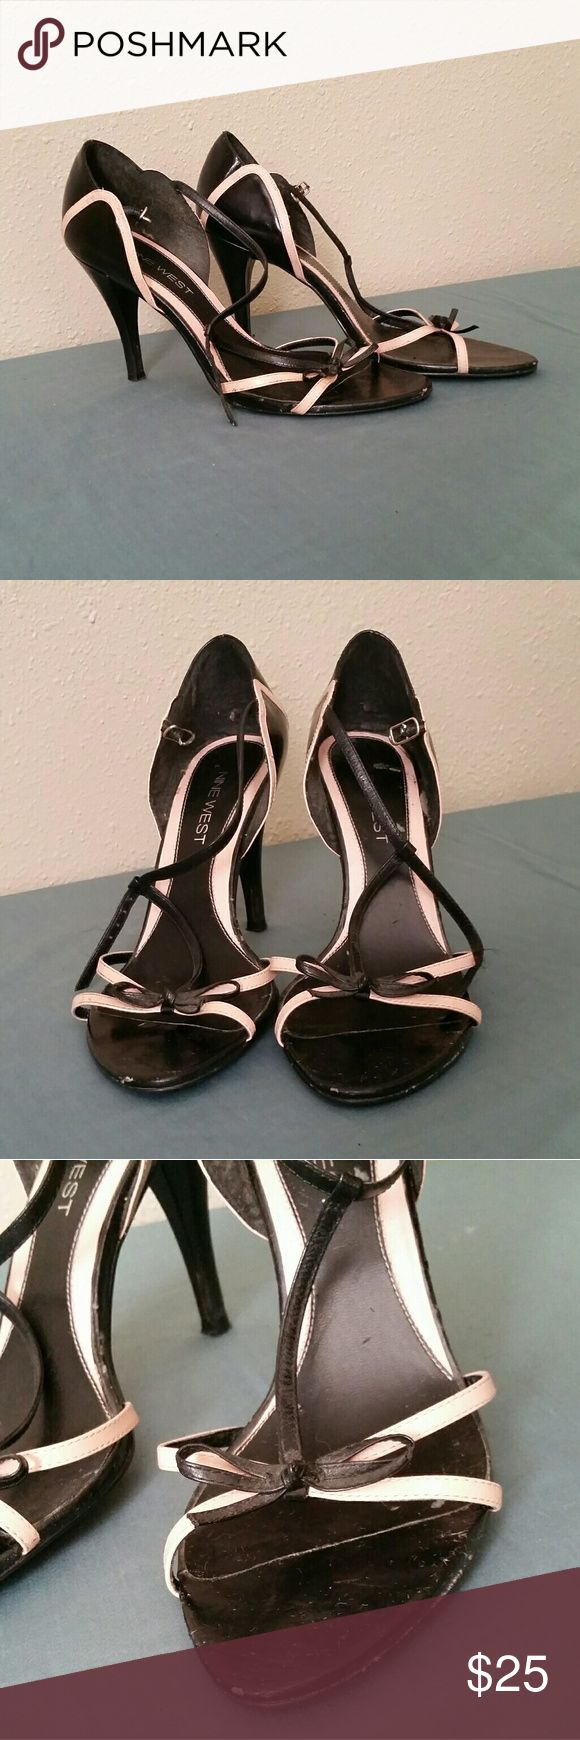 Selling this Nine West heels w/ bow detail on Poshmark! My username is: locochanel. #shopmycloset #poshmark #fashion #shopping #style #forsale #Nine West #Shoes